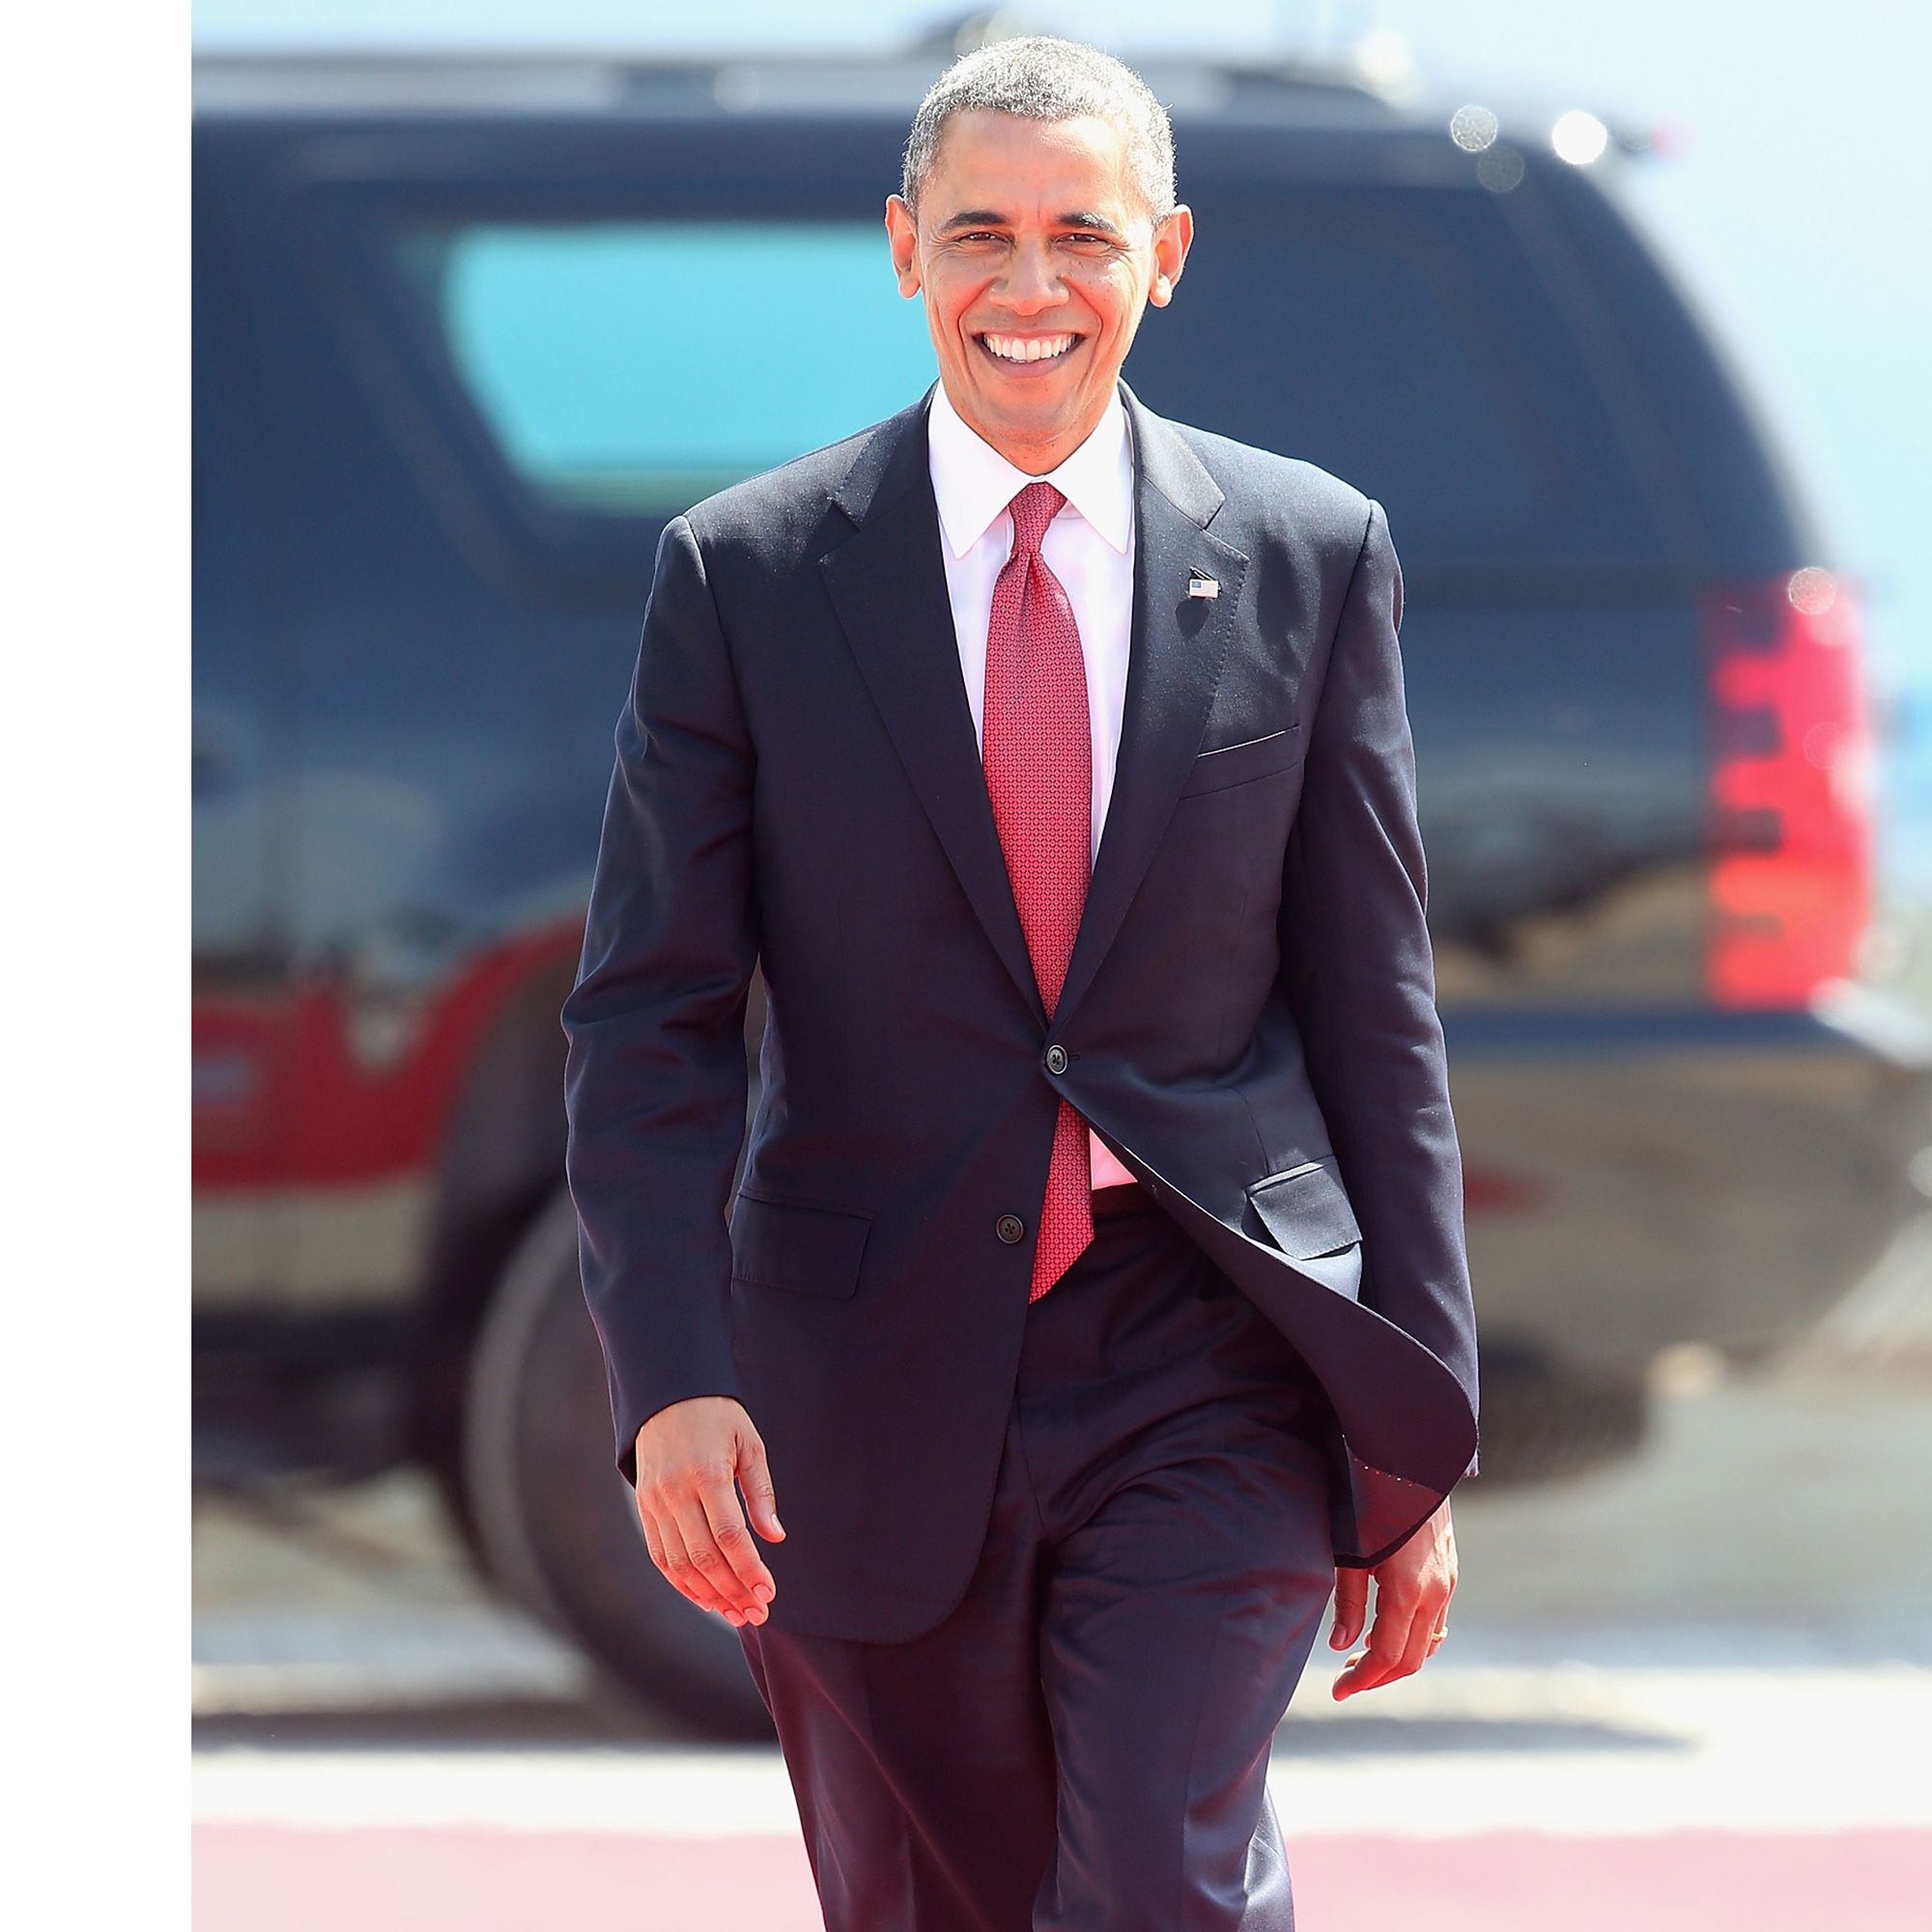 OUISTREHAM, FRANCE - JUNE 06:  President Barak Obama of the United States arrives for a Ceremony to Commemorate D-Day 70 on Sword Beach on June 6, 2014 in Ouistreham, France. Friday 6th June is the 70th anniversary of the D-Day landings which saw 156,000 troops from the allied countries including the United Kingdom and the United States join forces to launch an audacious attack on the beaches of Normandy,  these assaults are credited with the eventual defeat of Nazi Germany. A series of events commemorating the 70th anniversary are planned for the week with many heads of state travelling to the famous beaches to pay their respects to those who lost their lives.  (Photo by Chris Jackson/Getty Images)